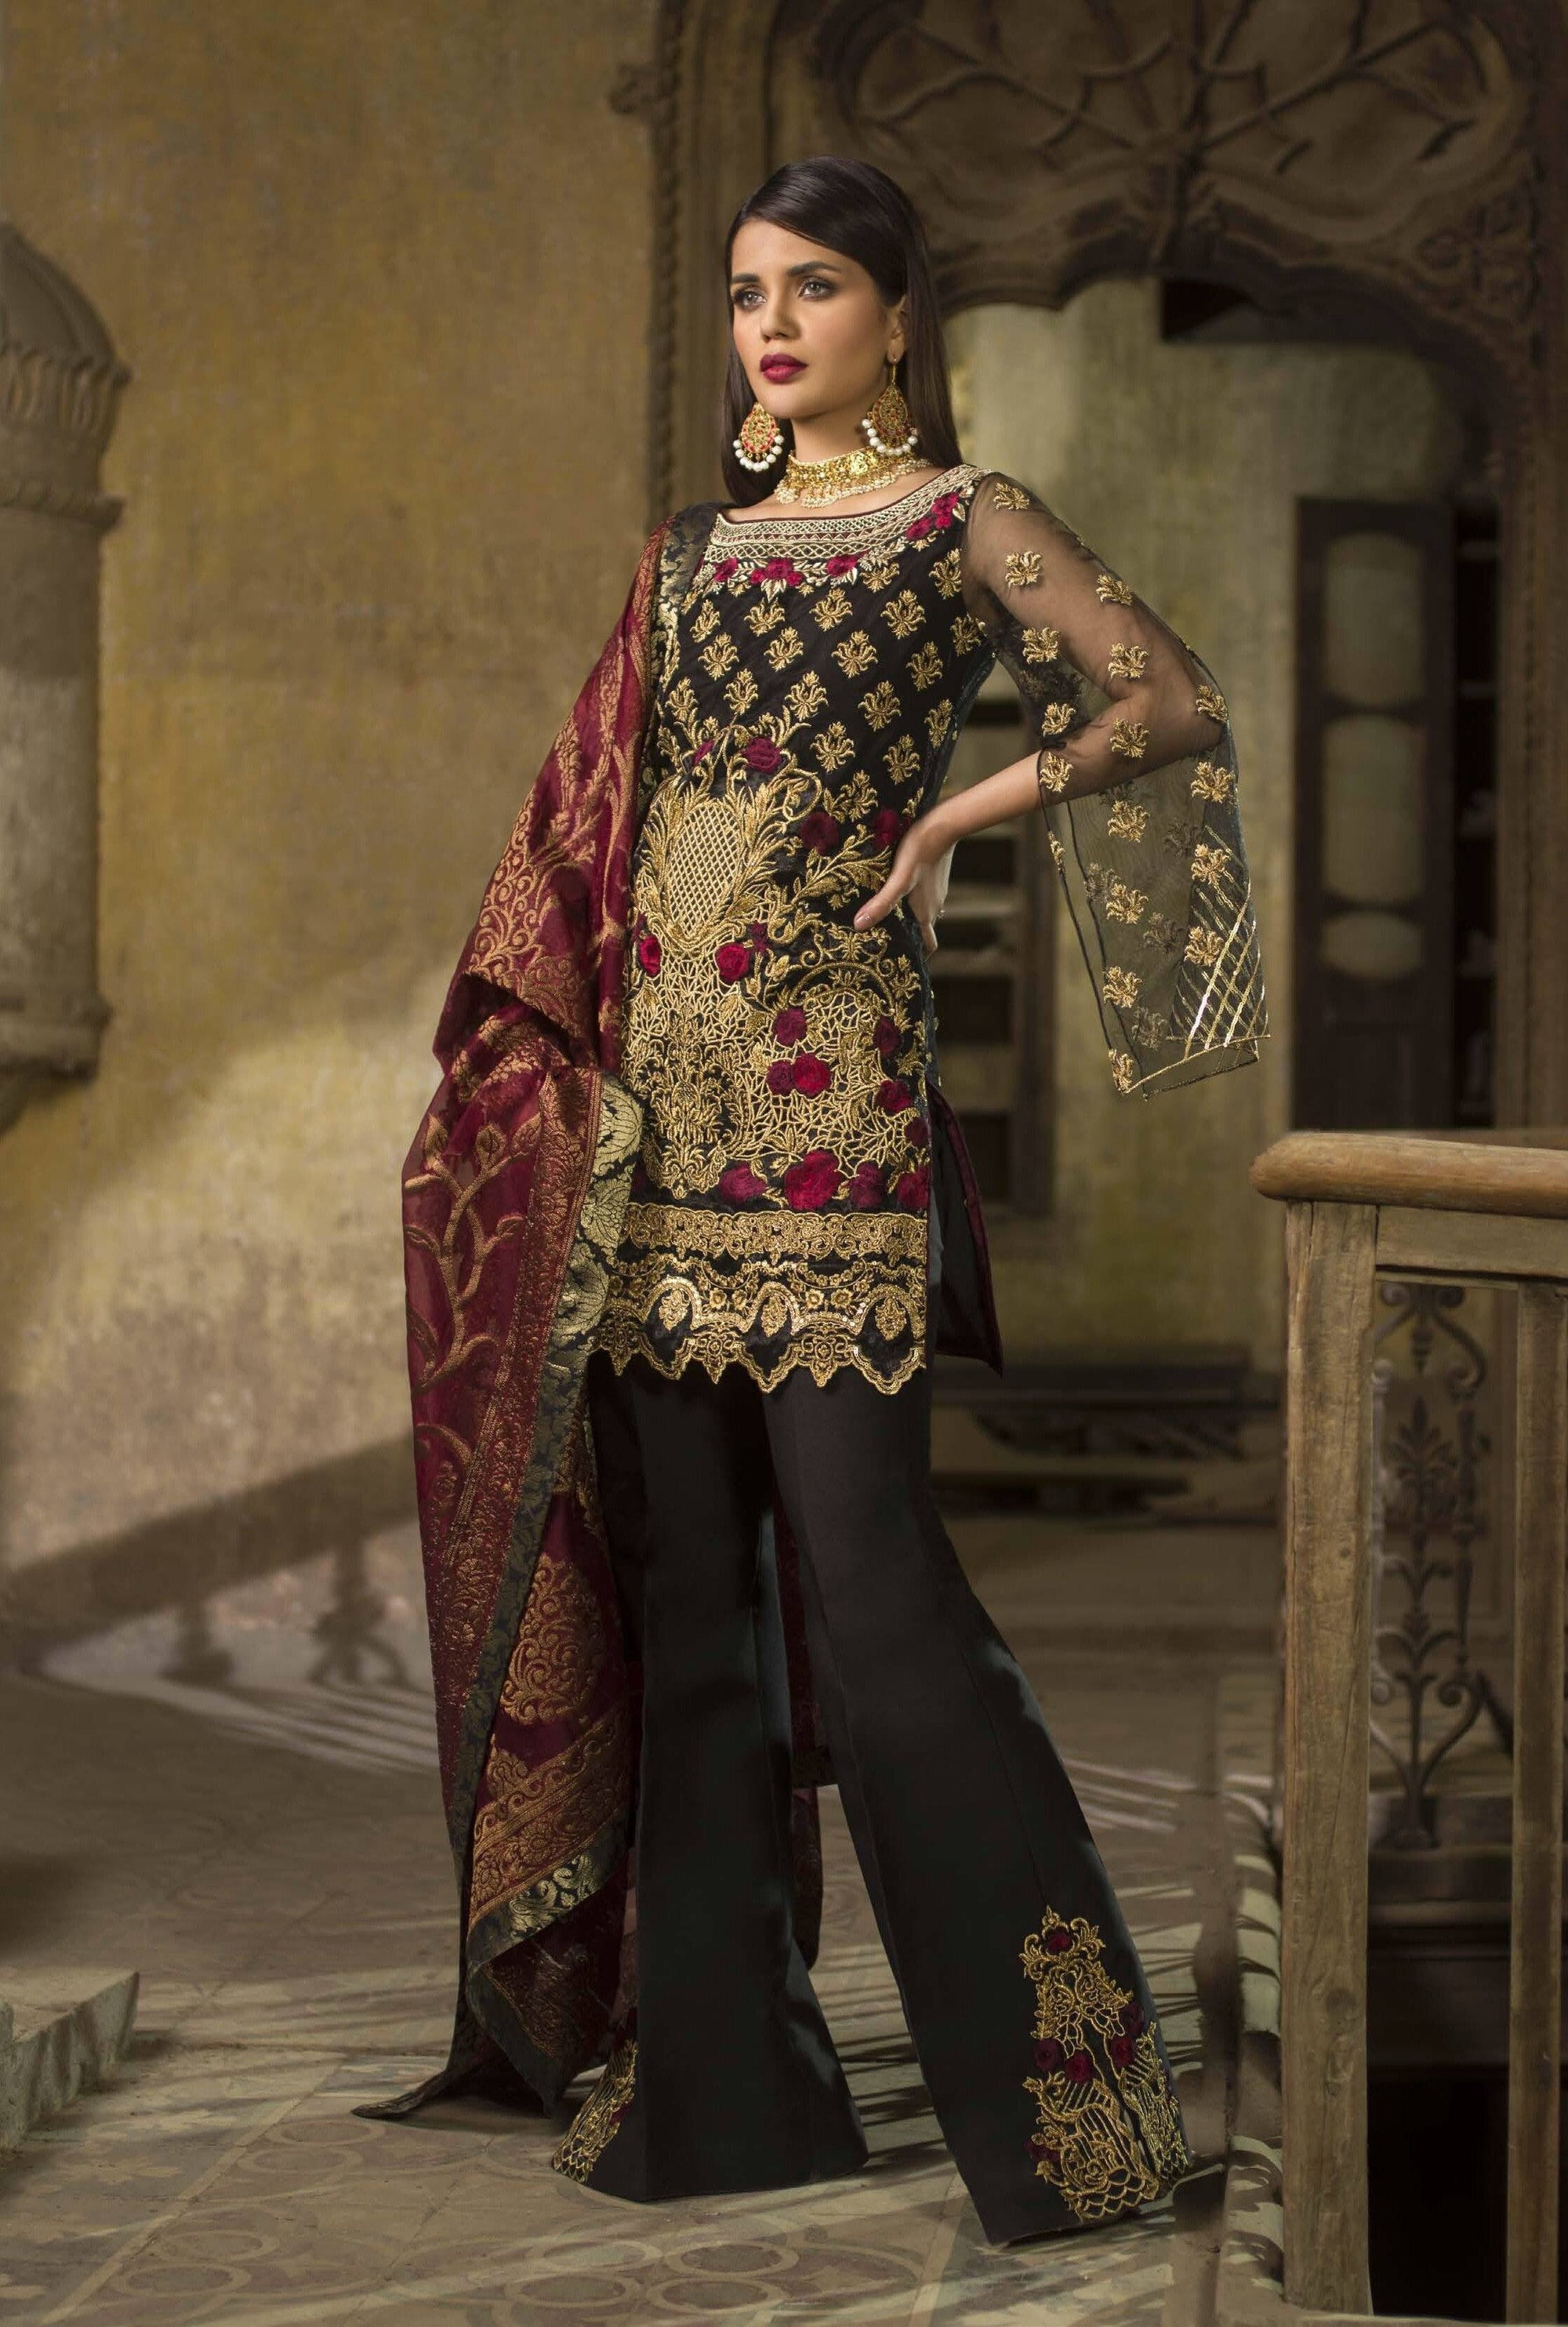 Zainab chottani 06 Black-Heavy Embroided 3pc unstiched pure chiffon dress with embroided banarsi dupatta.